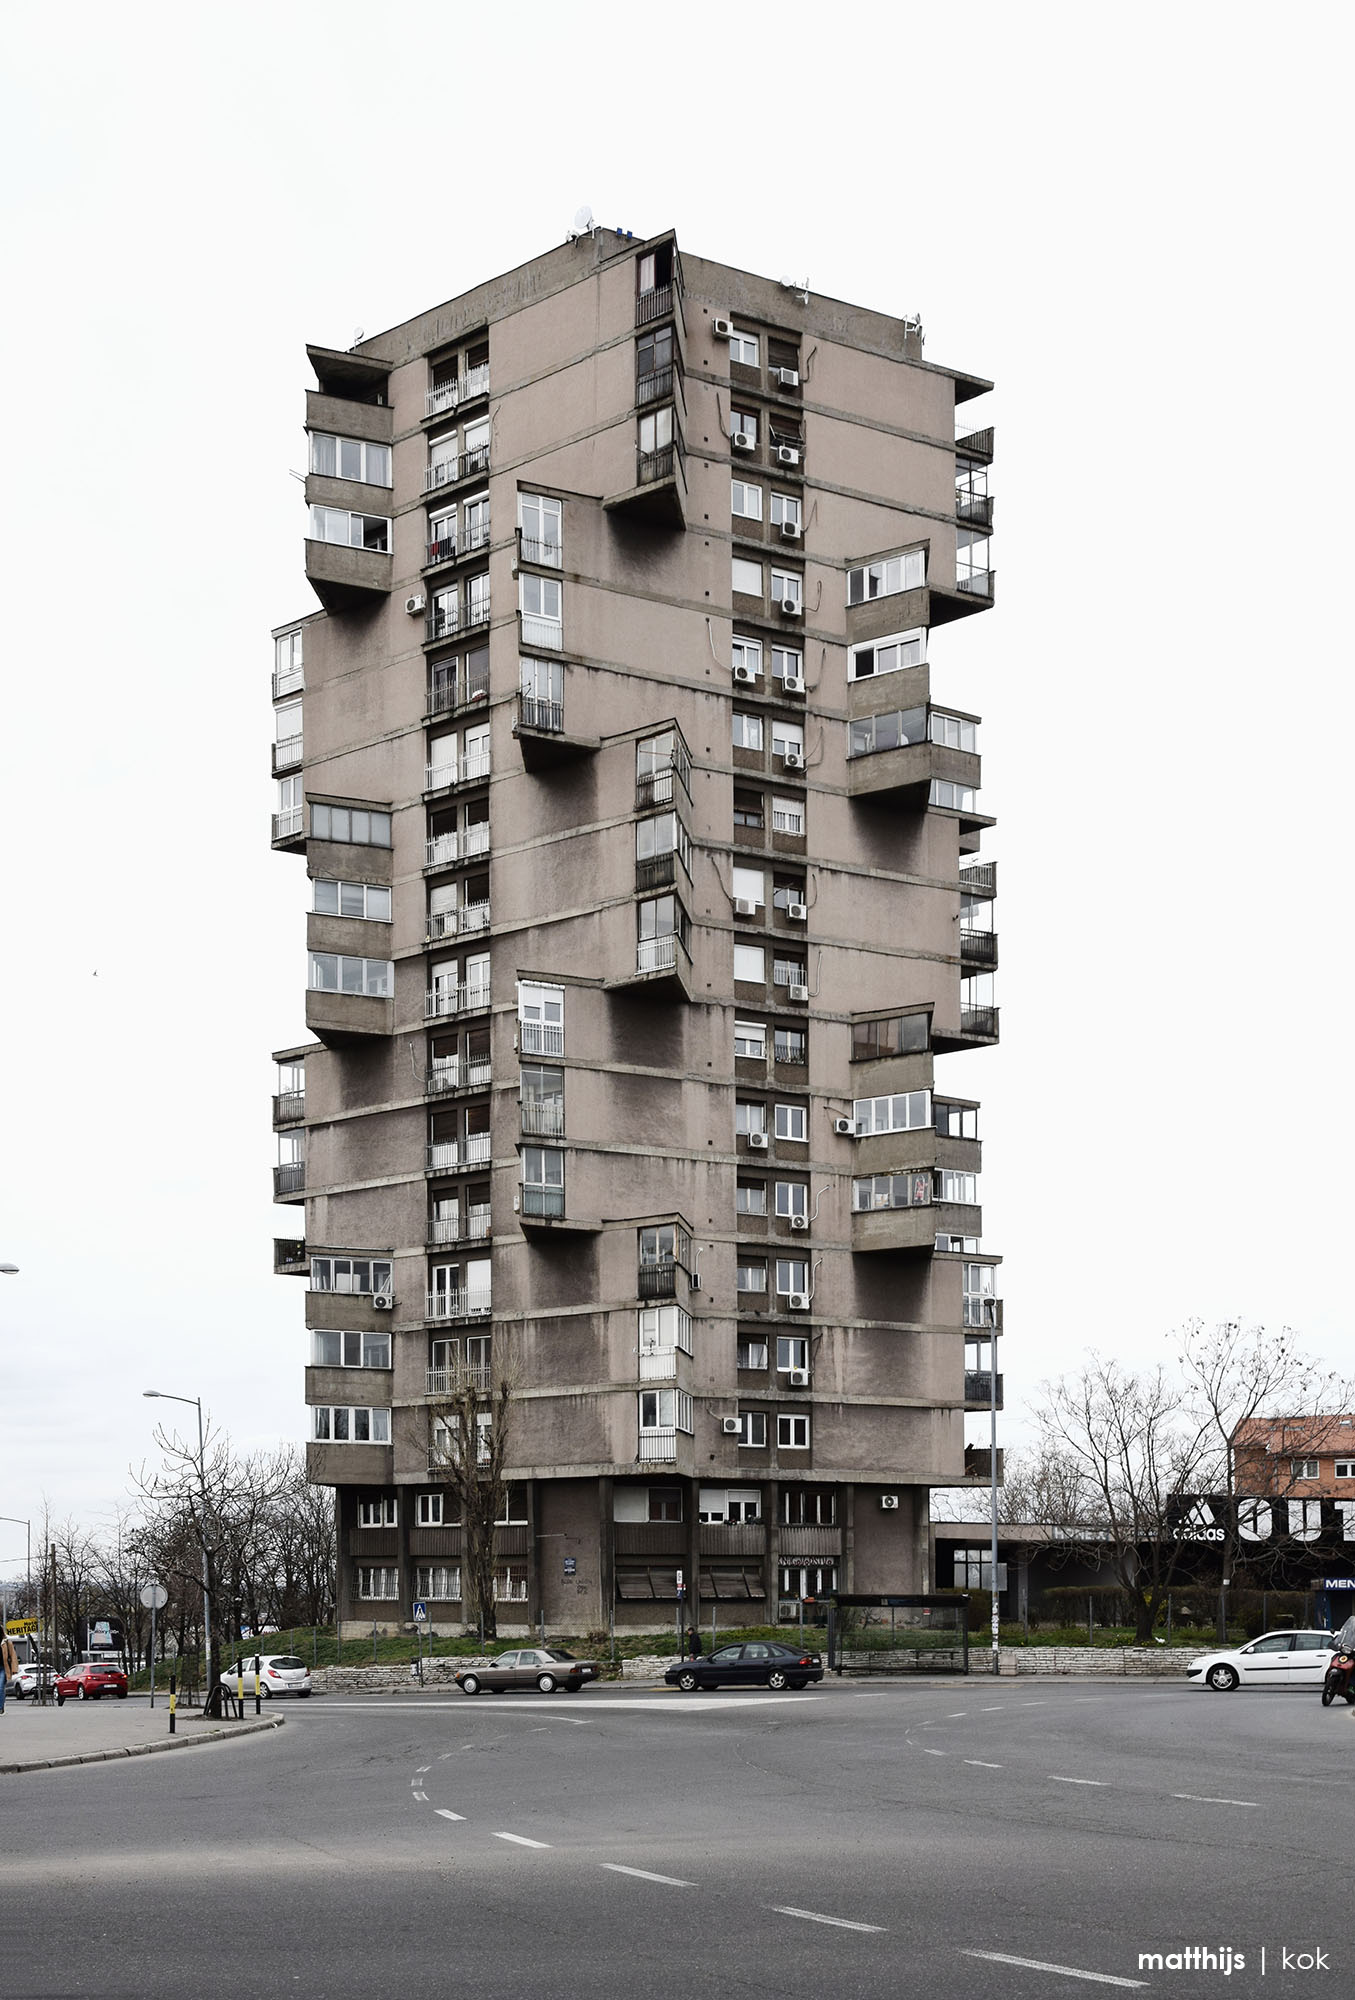 Karaburma Housing Tower | Toblerone Building, Belgrade, Serbia | Photo by Matthijs Kok